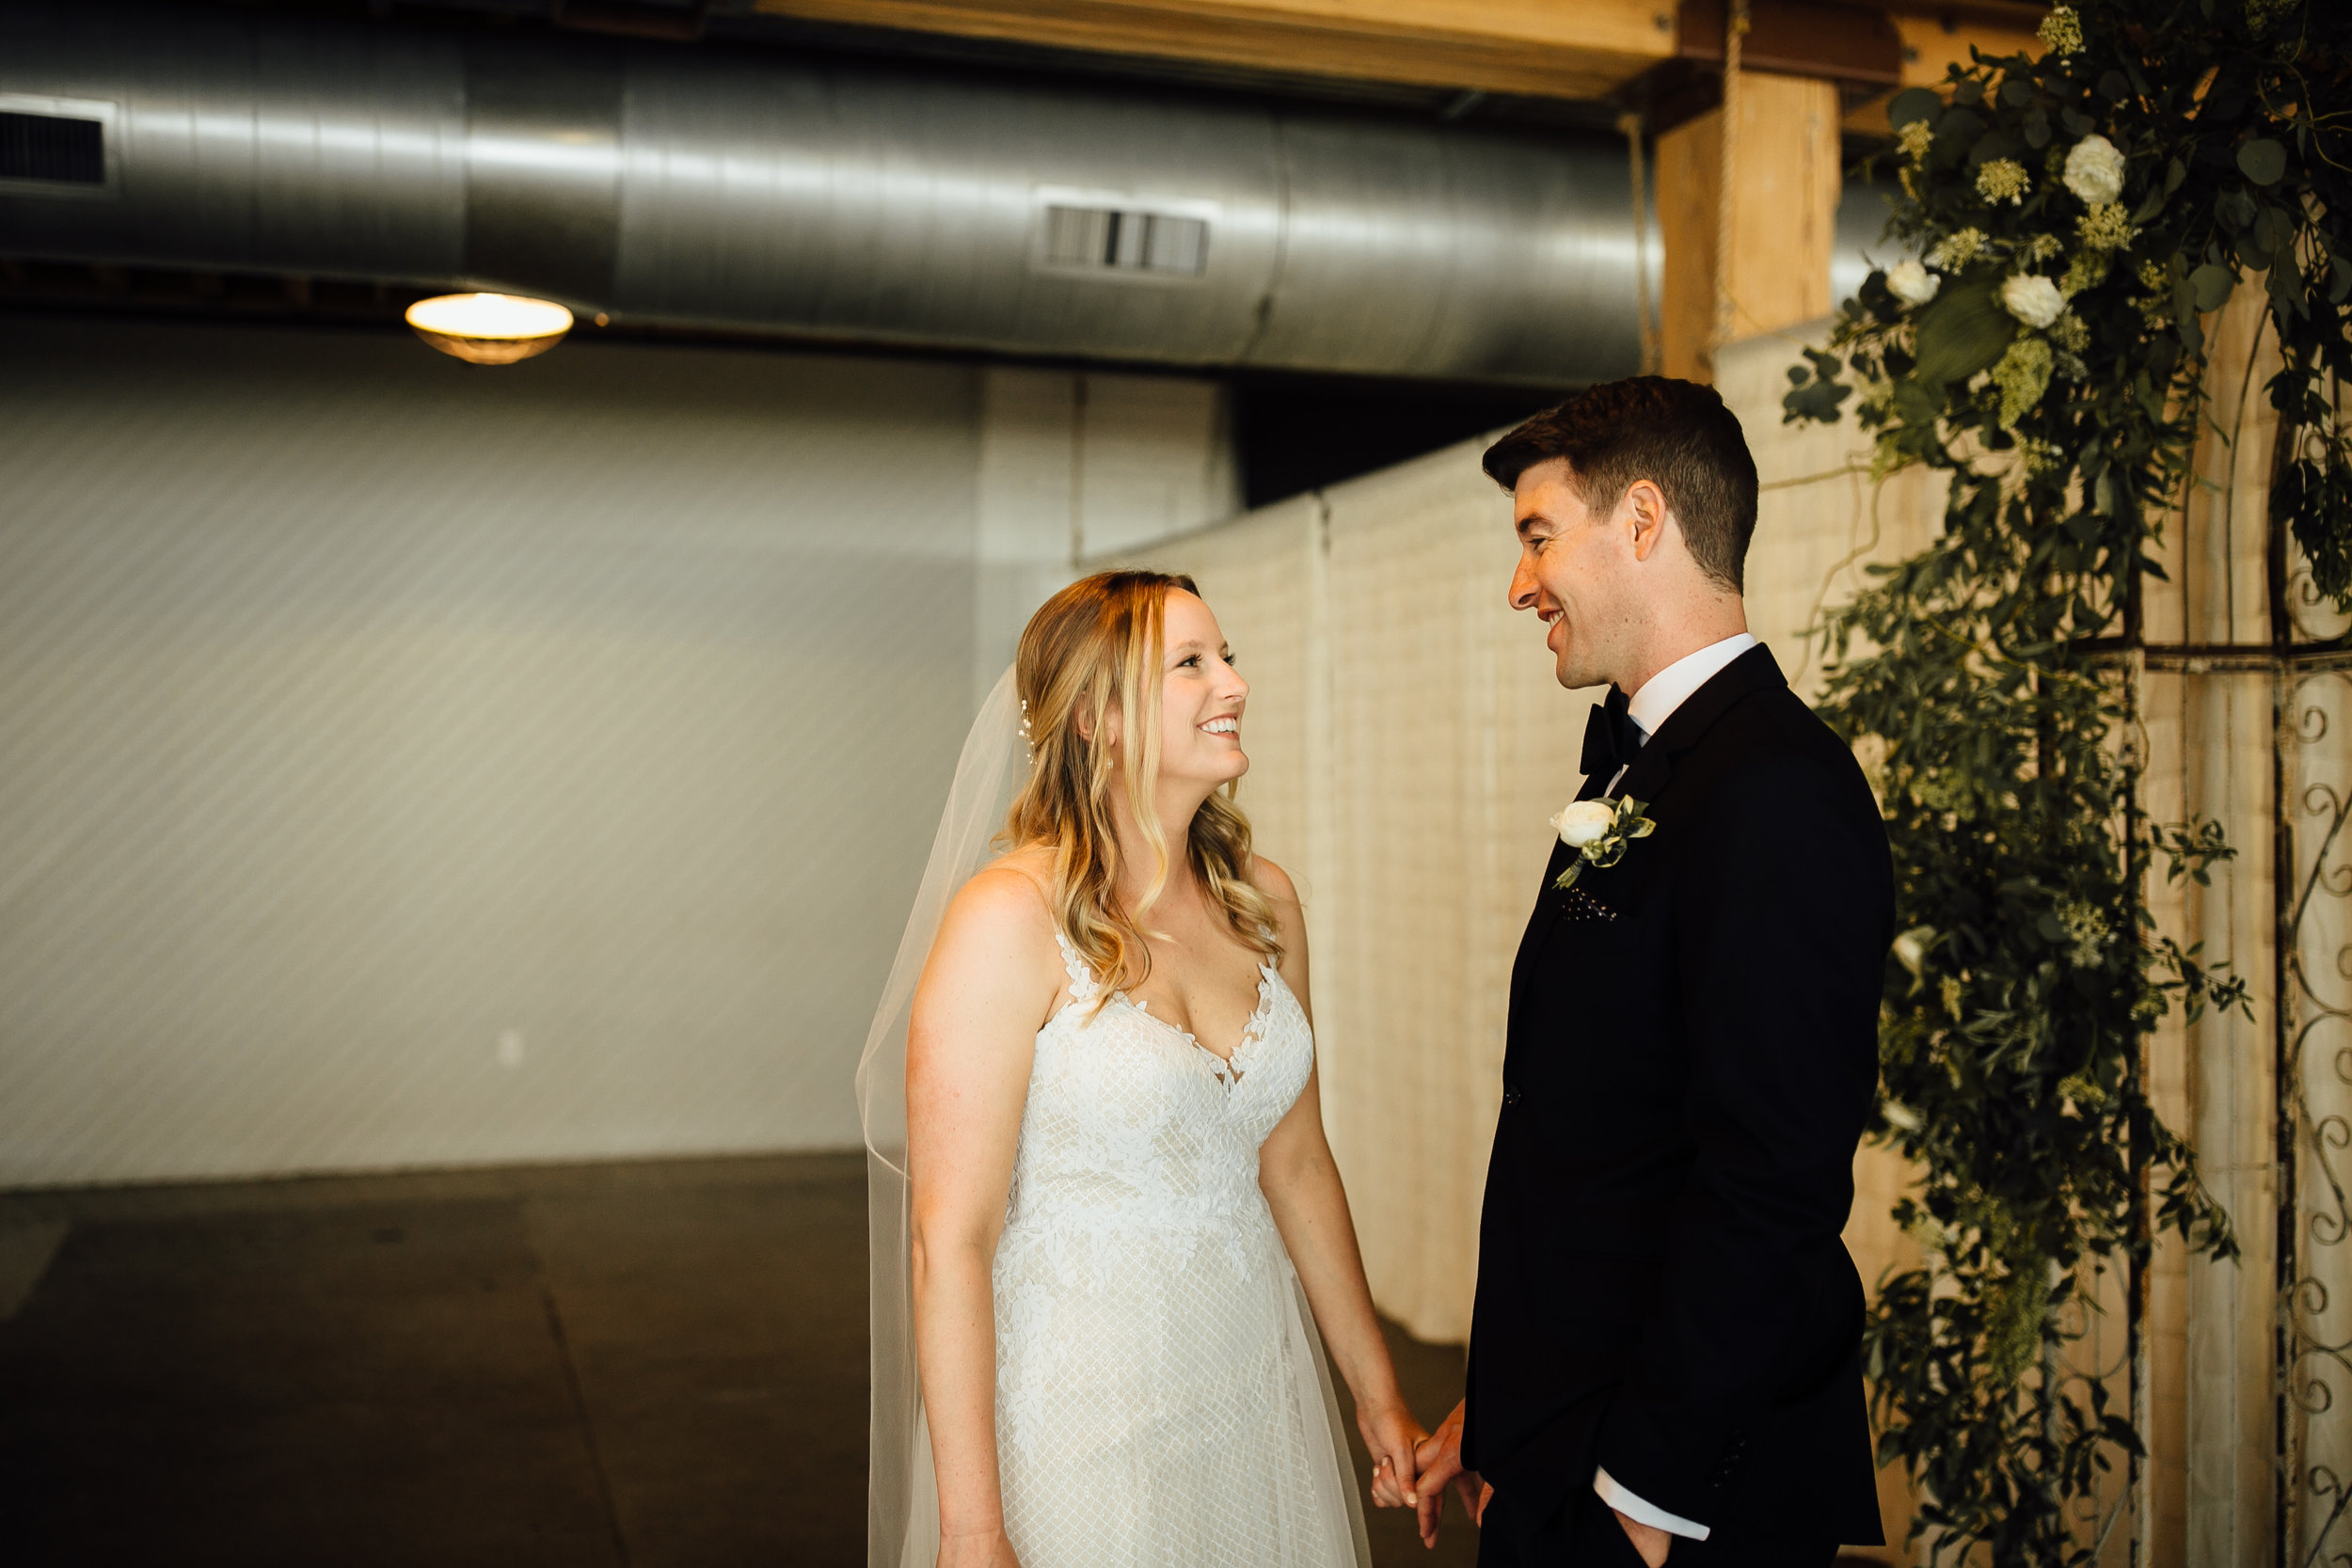 2018-6-Maggie-Johnny-First-Look-Cheney-Place-Wedding-Grand-Rapids-Michigan-Wedding-Photographer-31.jpg